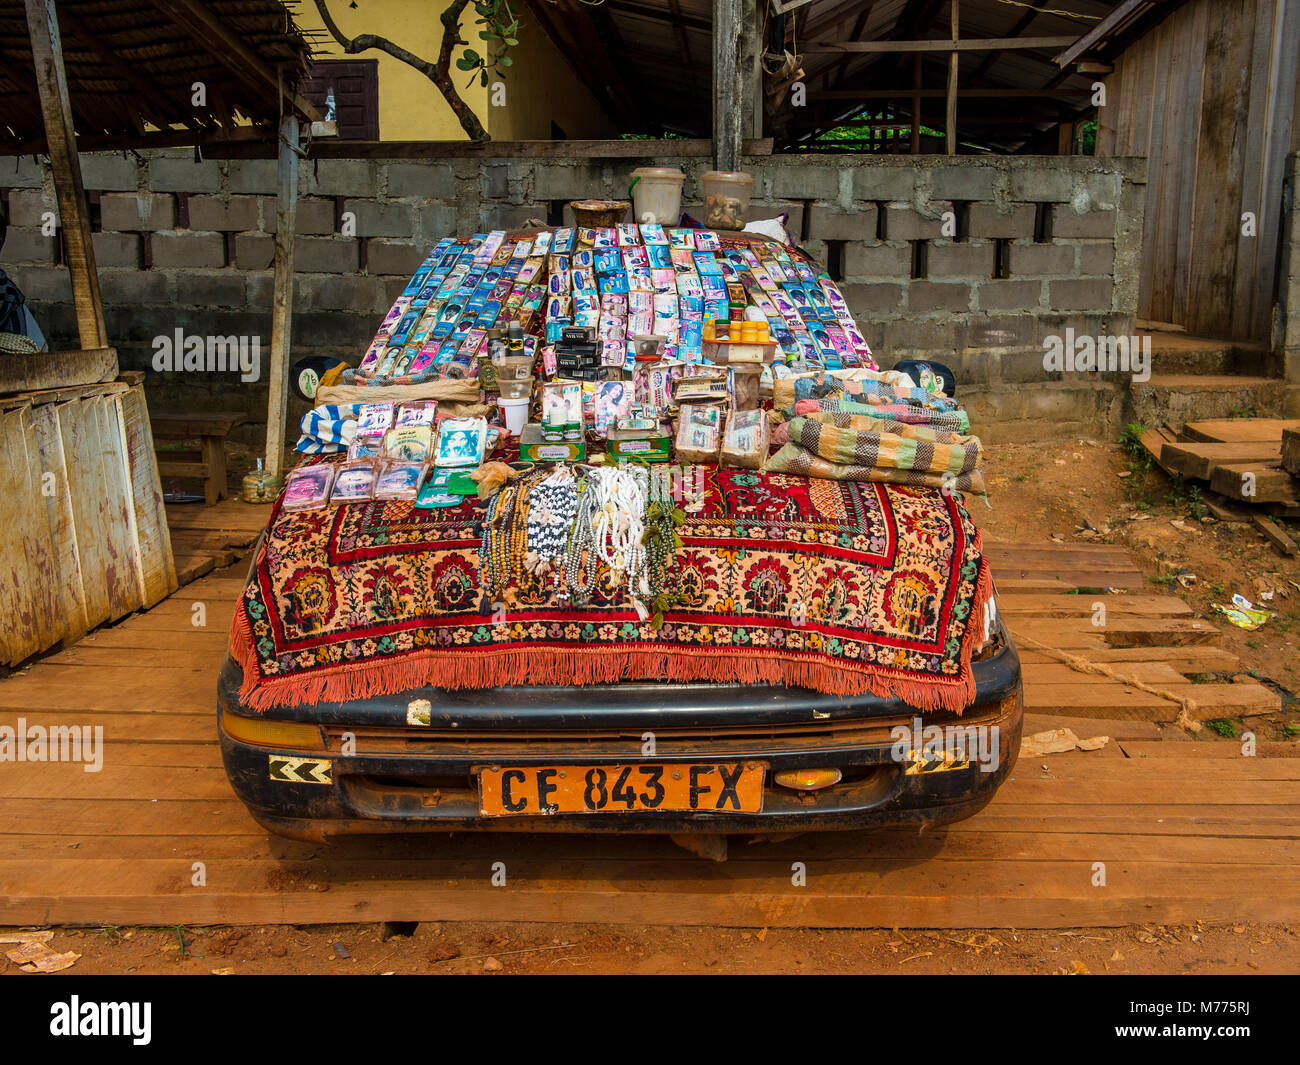 Local store on a car, Libongo, deep in the jungle area, Cameroon, Africa - Stock Image